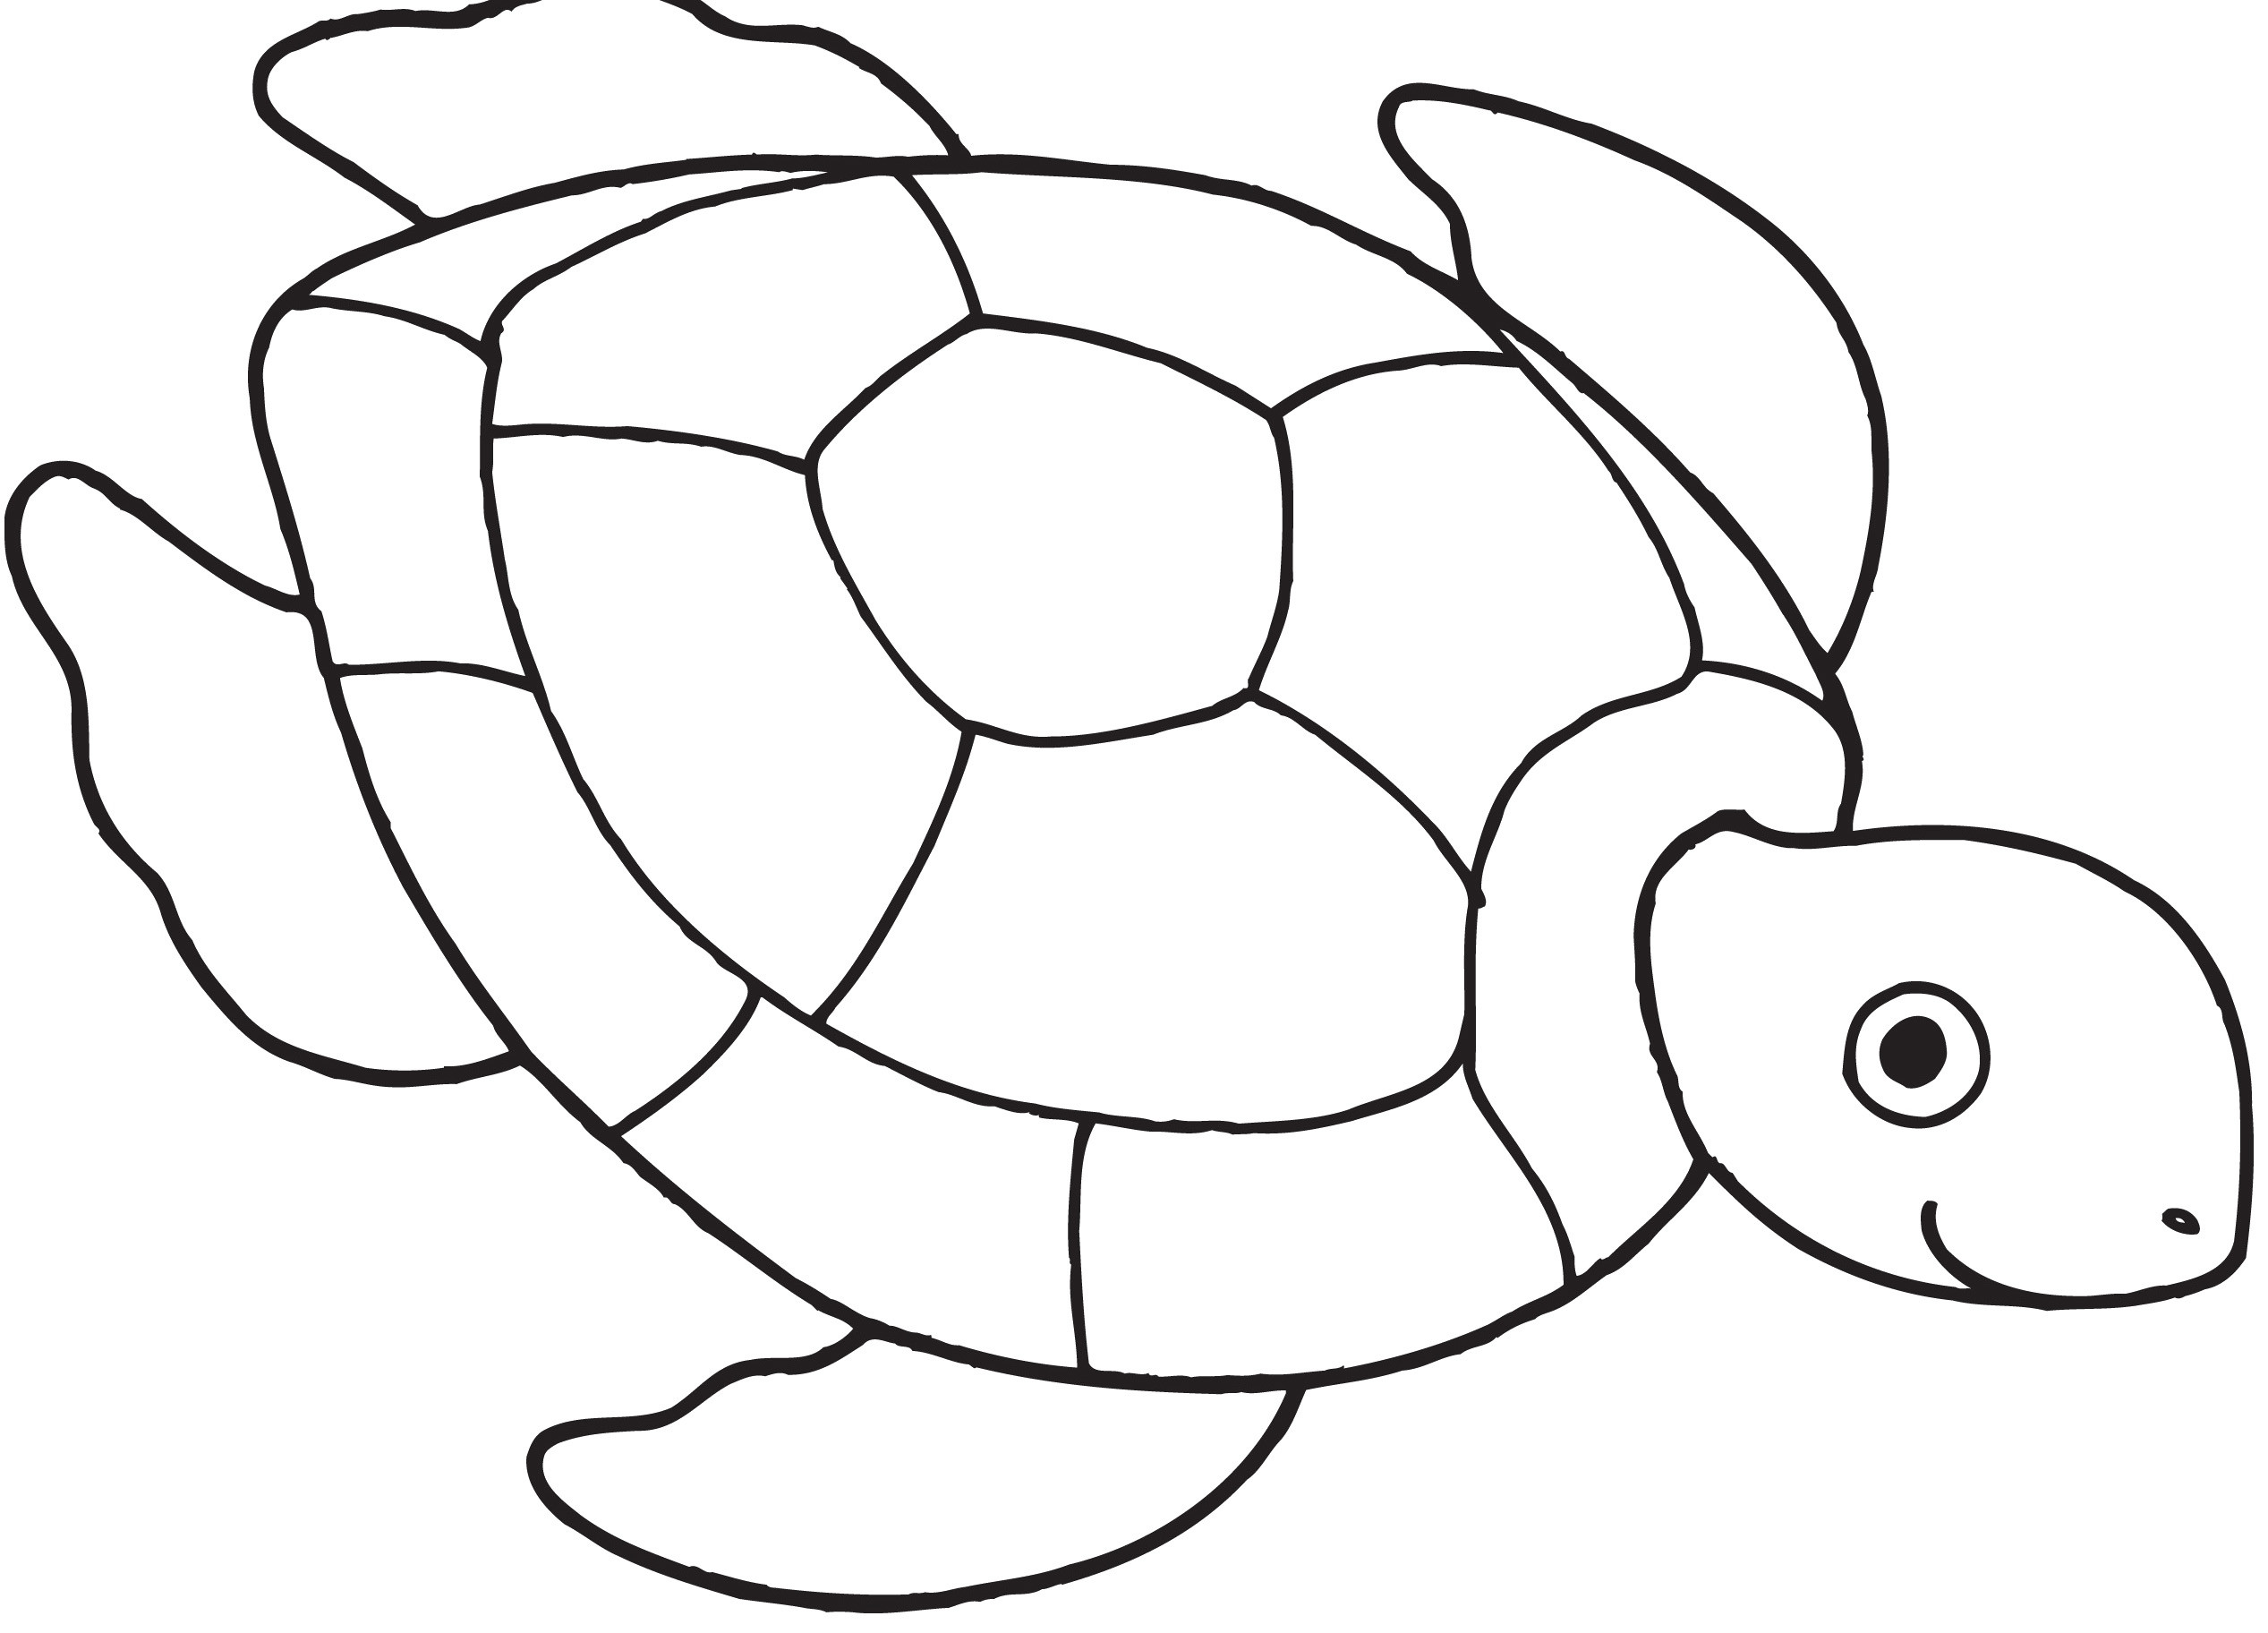 Turtles Coloring Book  Turtle Coloring Page Coloring Book Coloring Pages